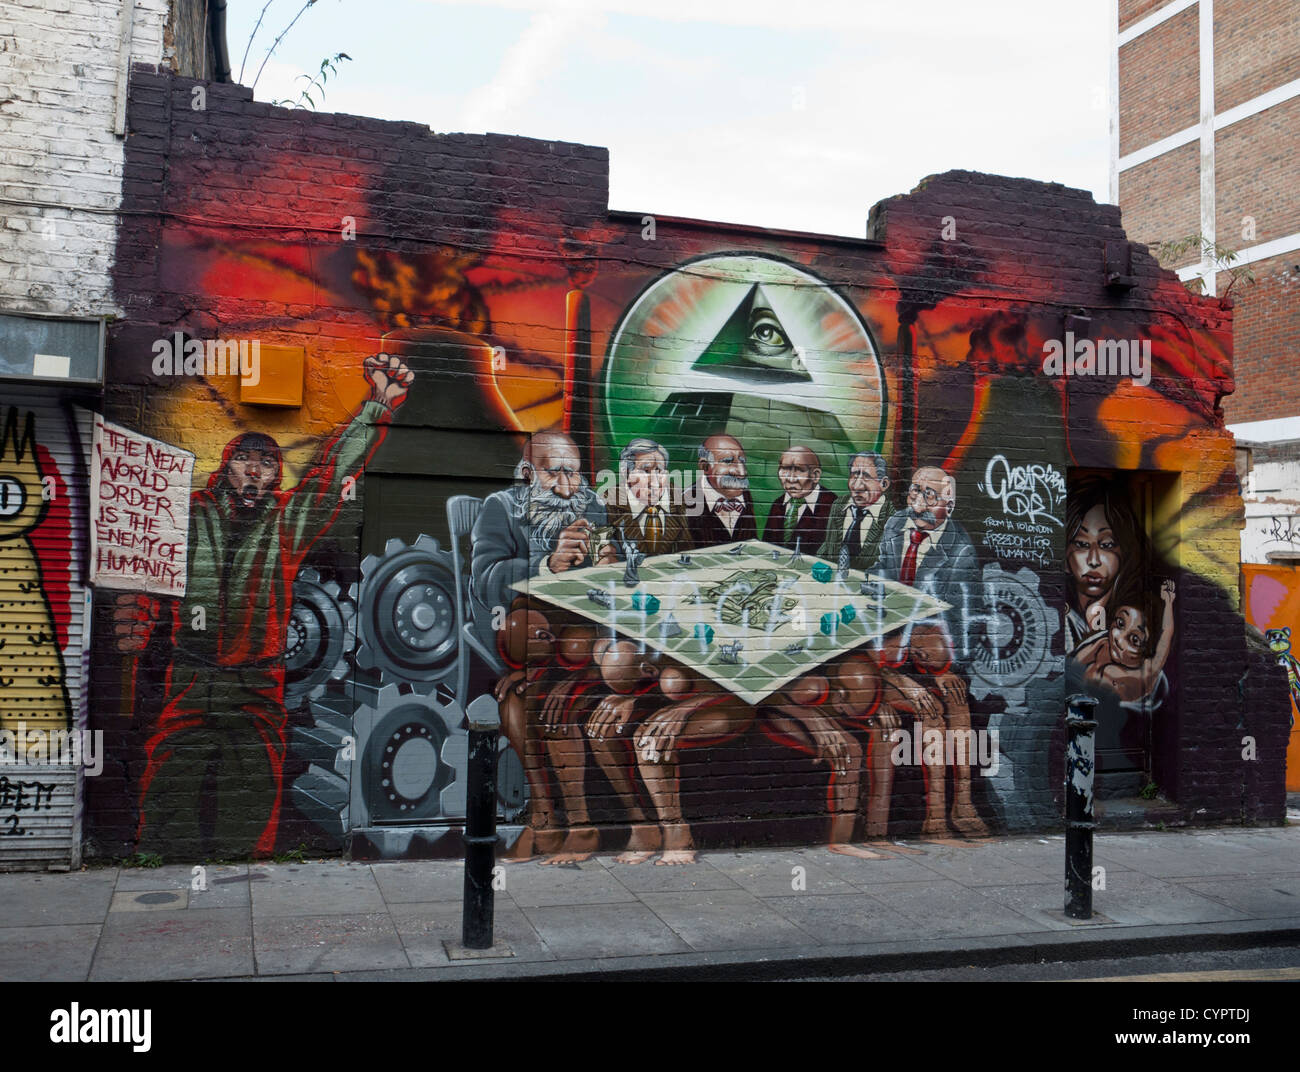 New World Order Mural By The Artist Mear One In Hanbury Street Off